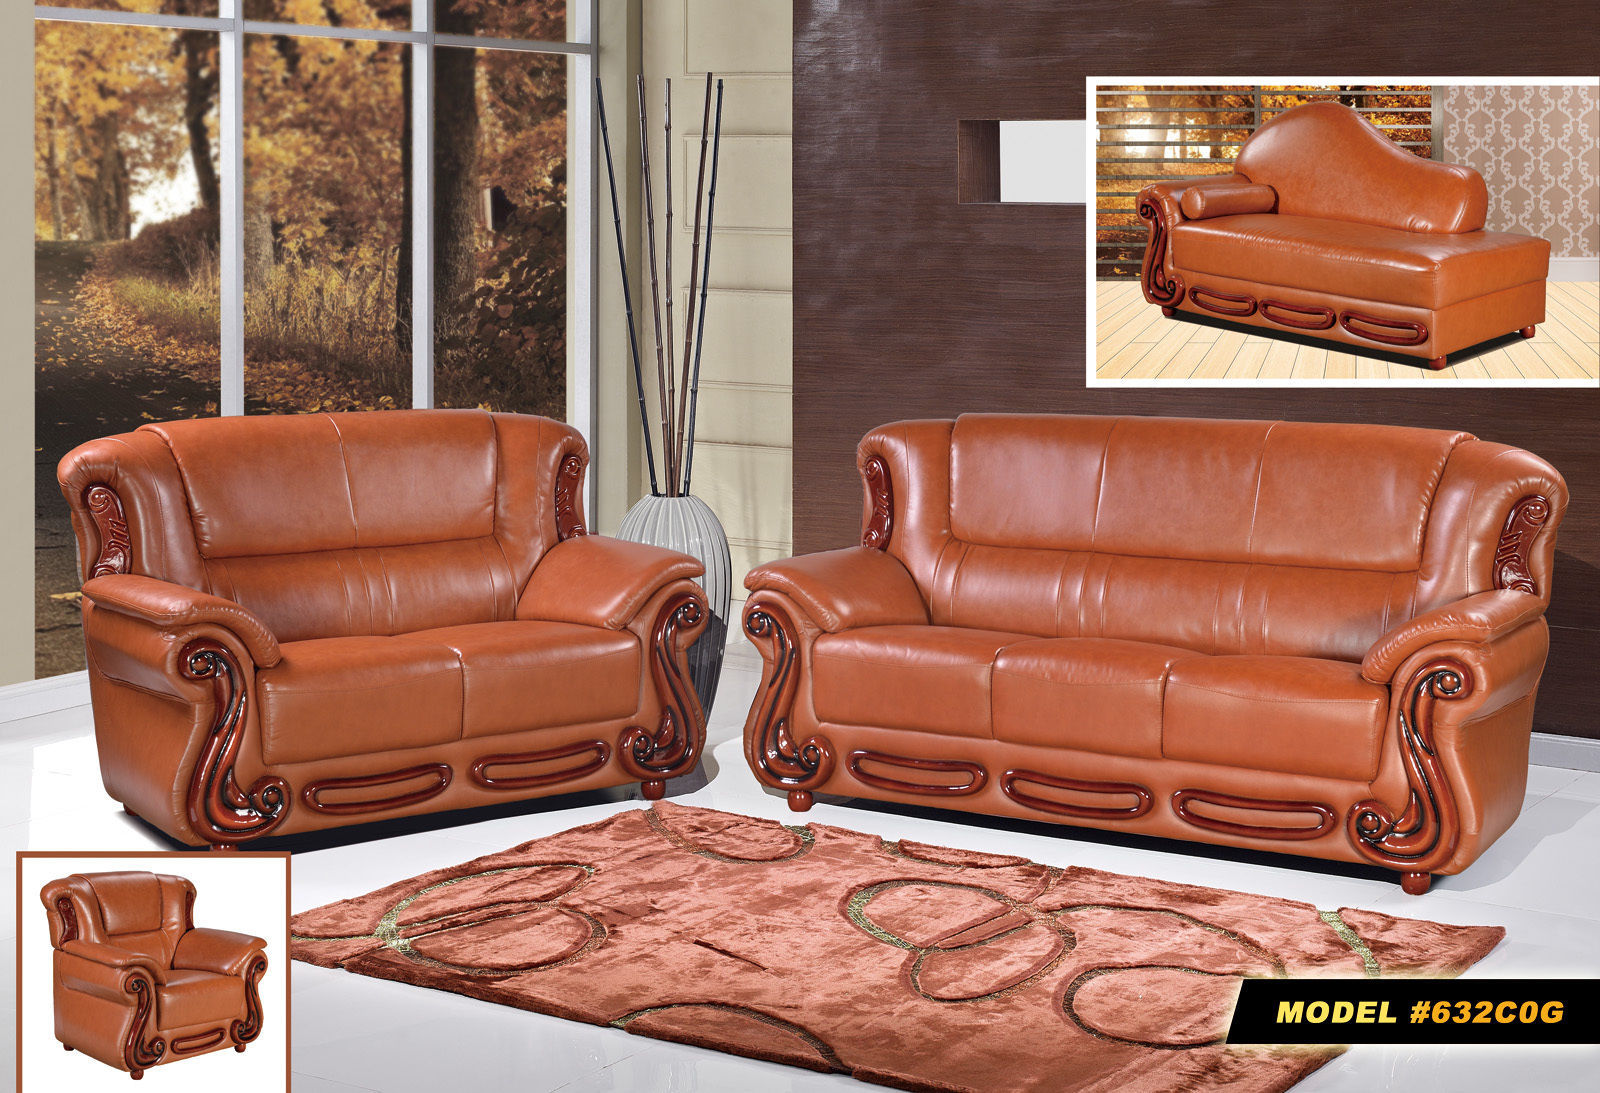 Meridian 632 Bonded Leather Living Room Sofa Set 3pc. Rich Cherry Traditional